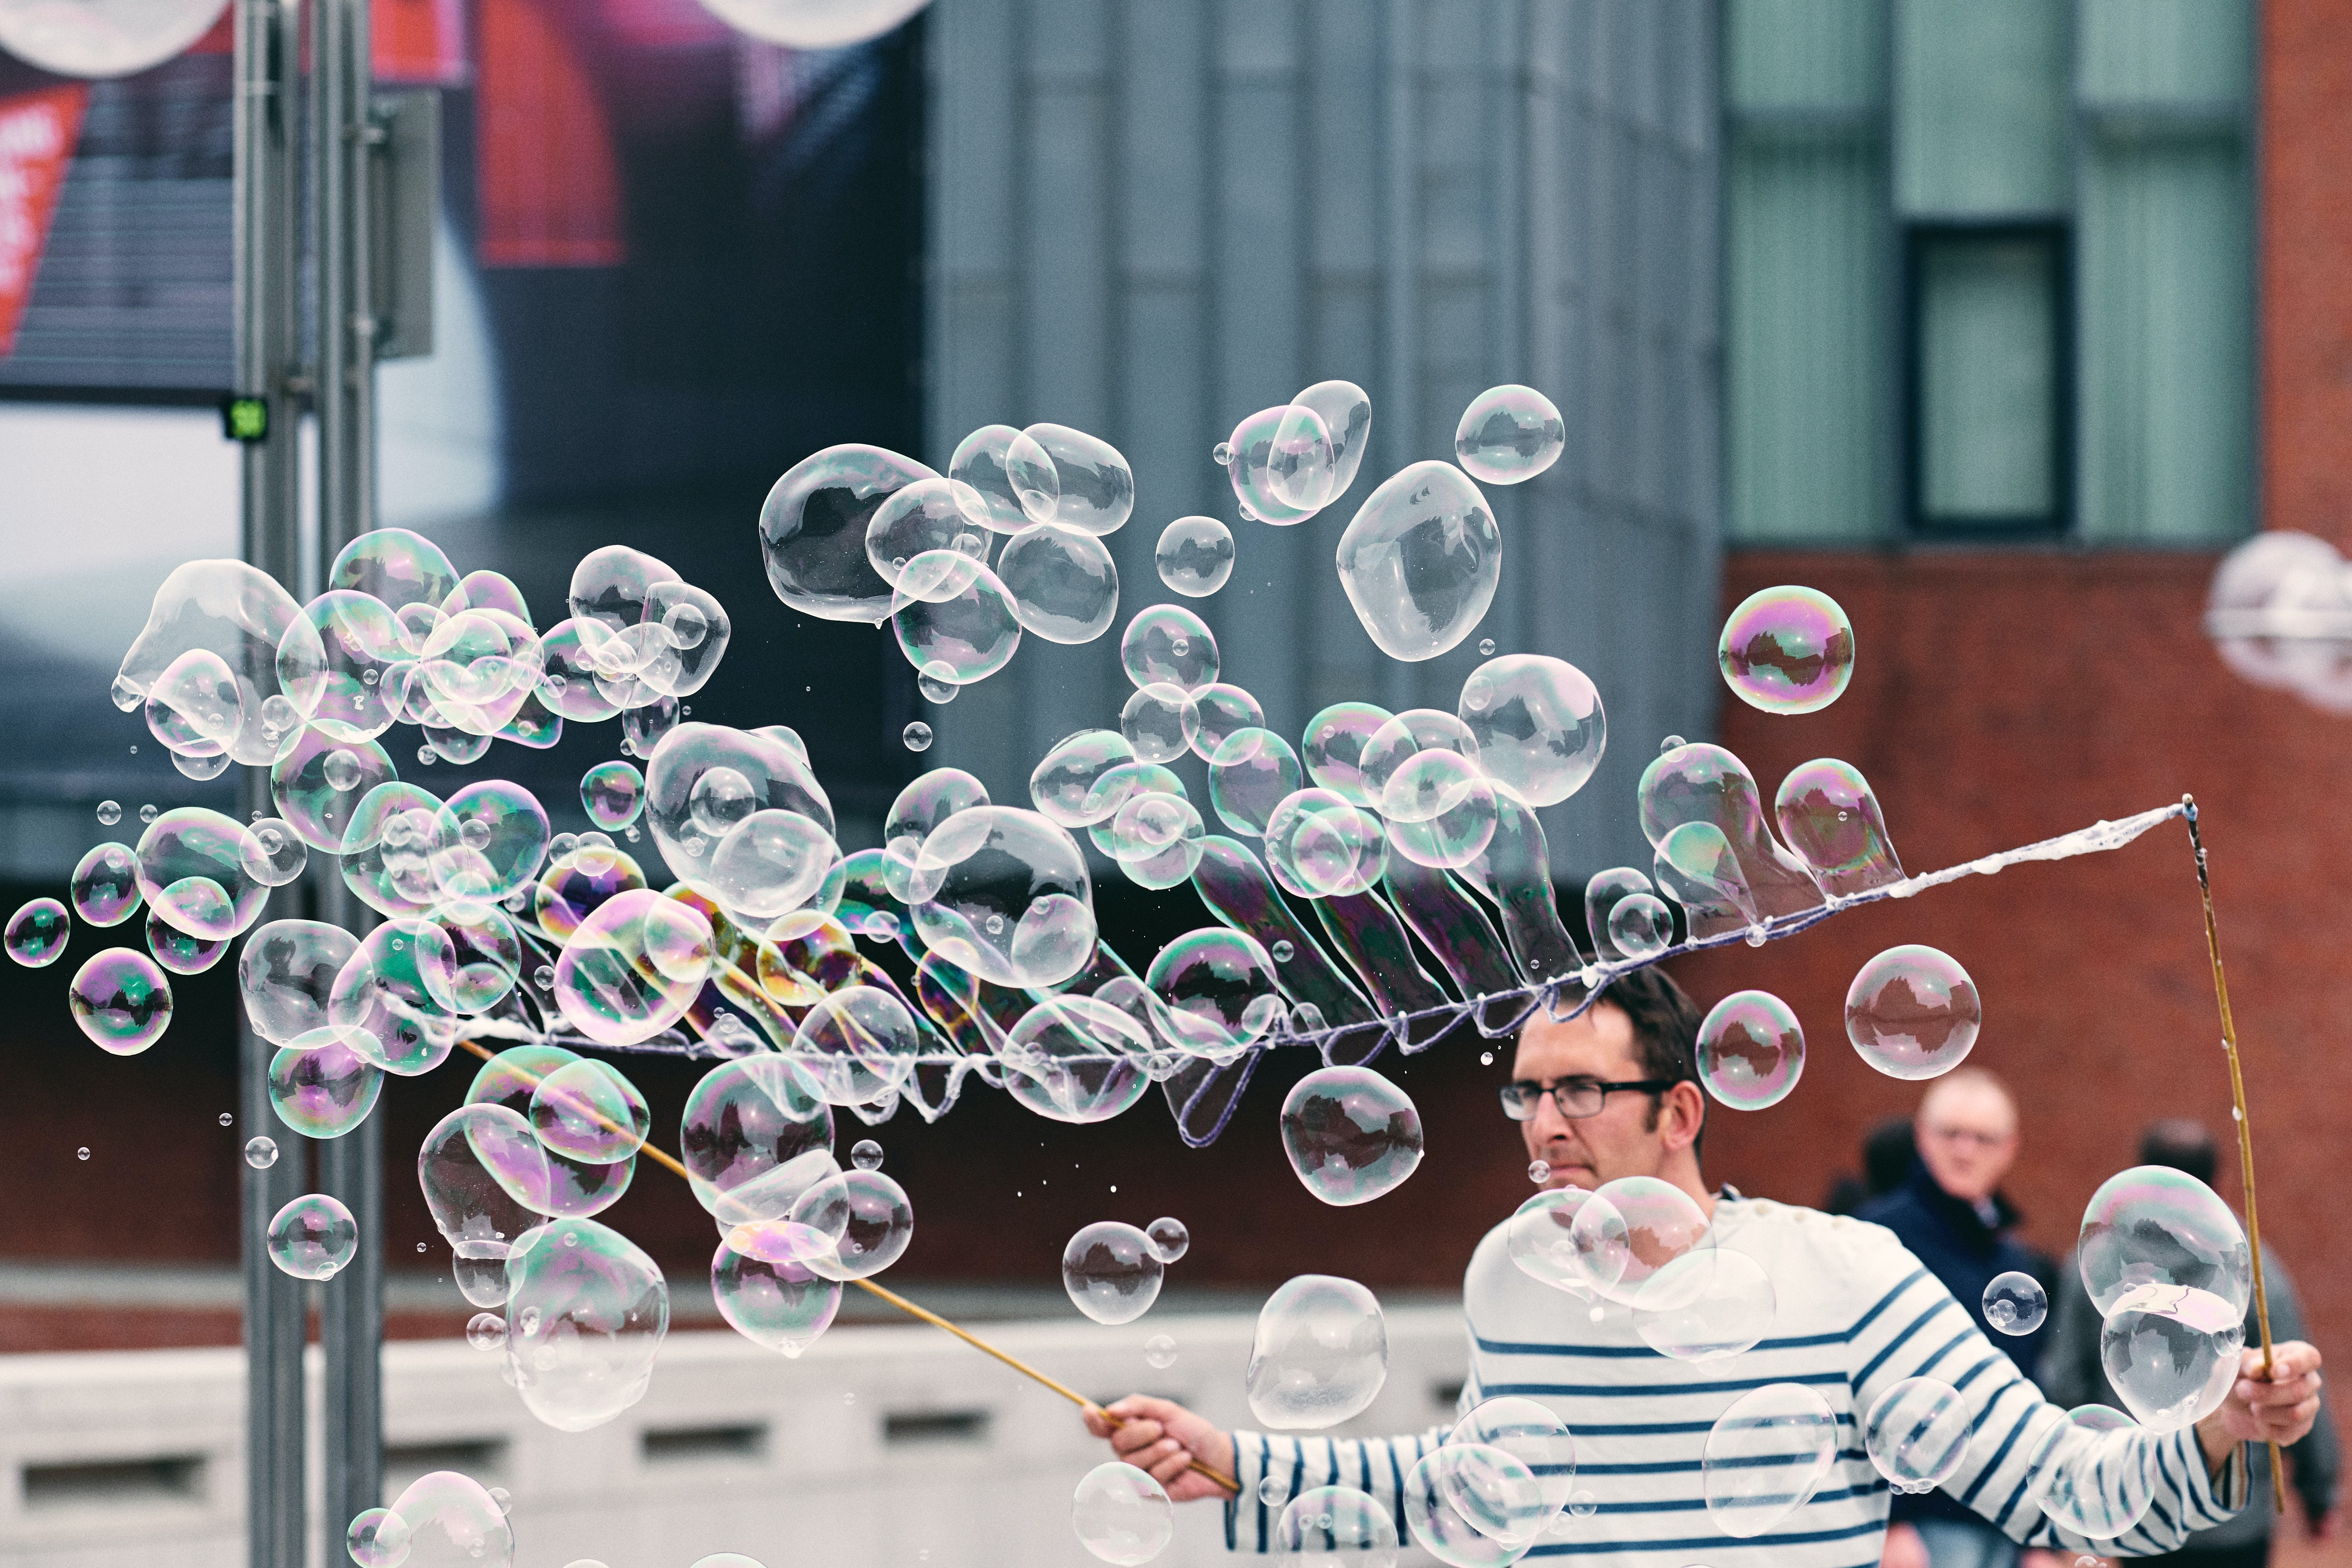 man making soap bubbles during daytime